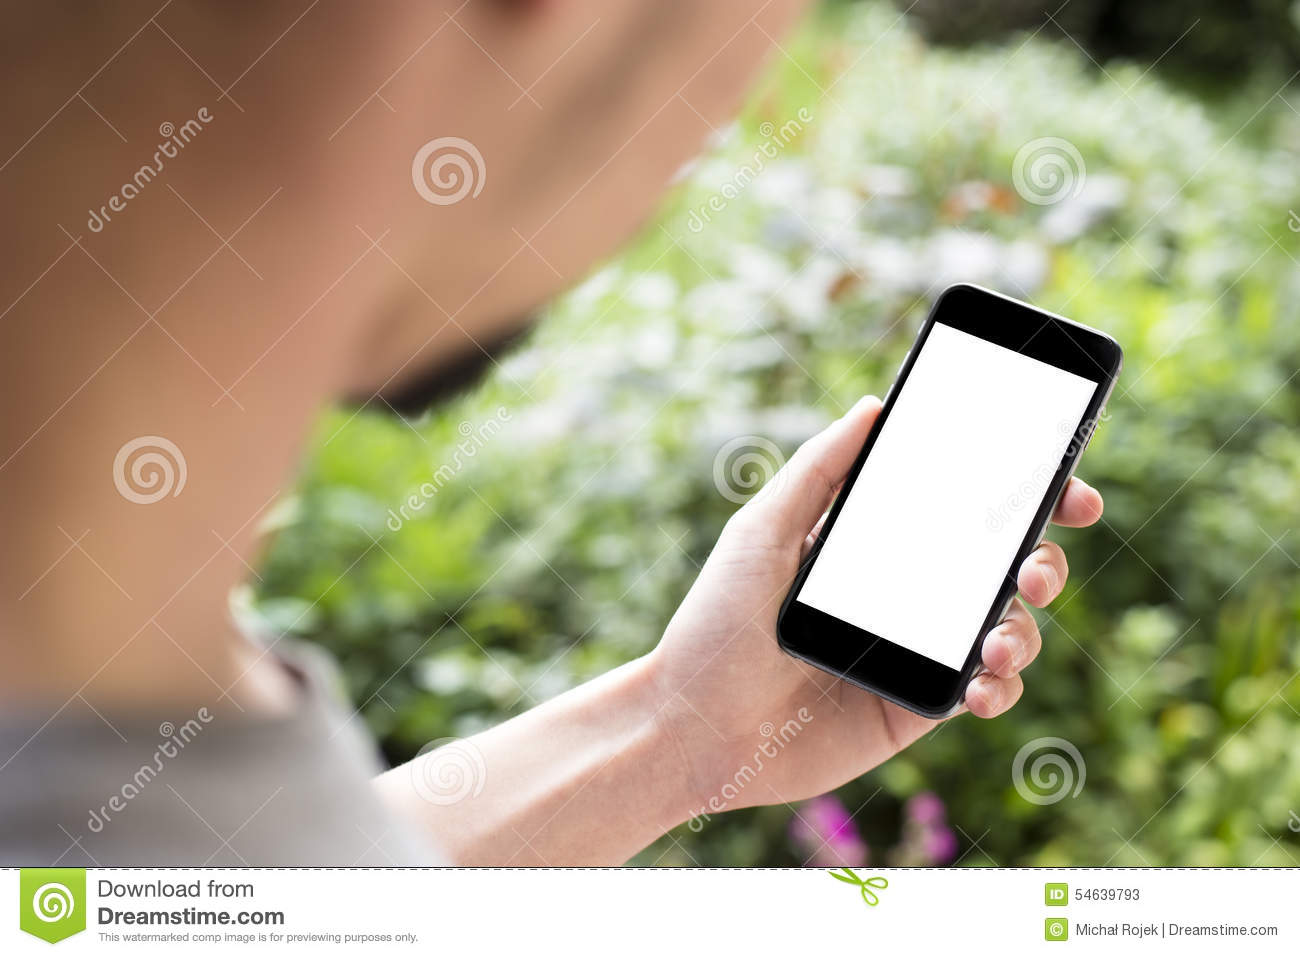 Man using mobile smartphone.